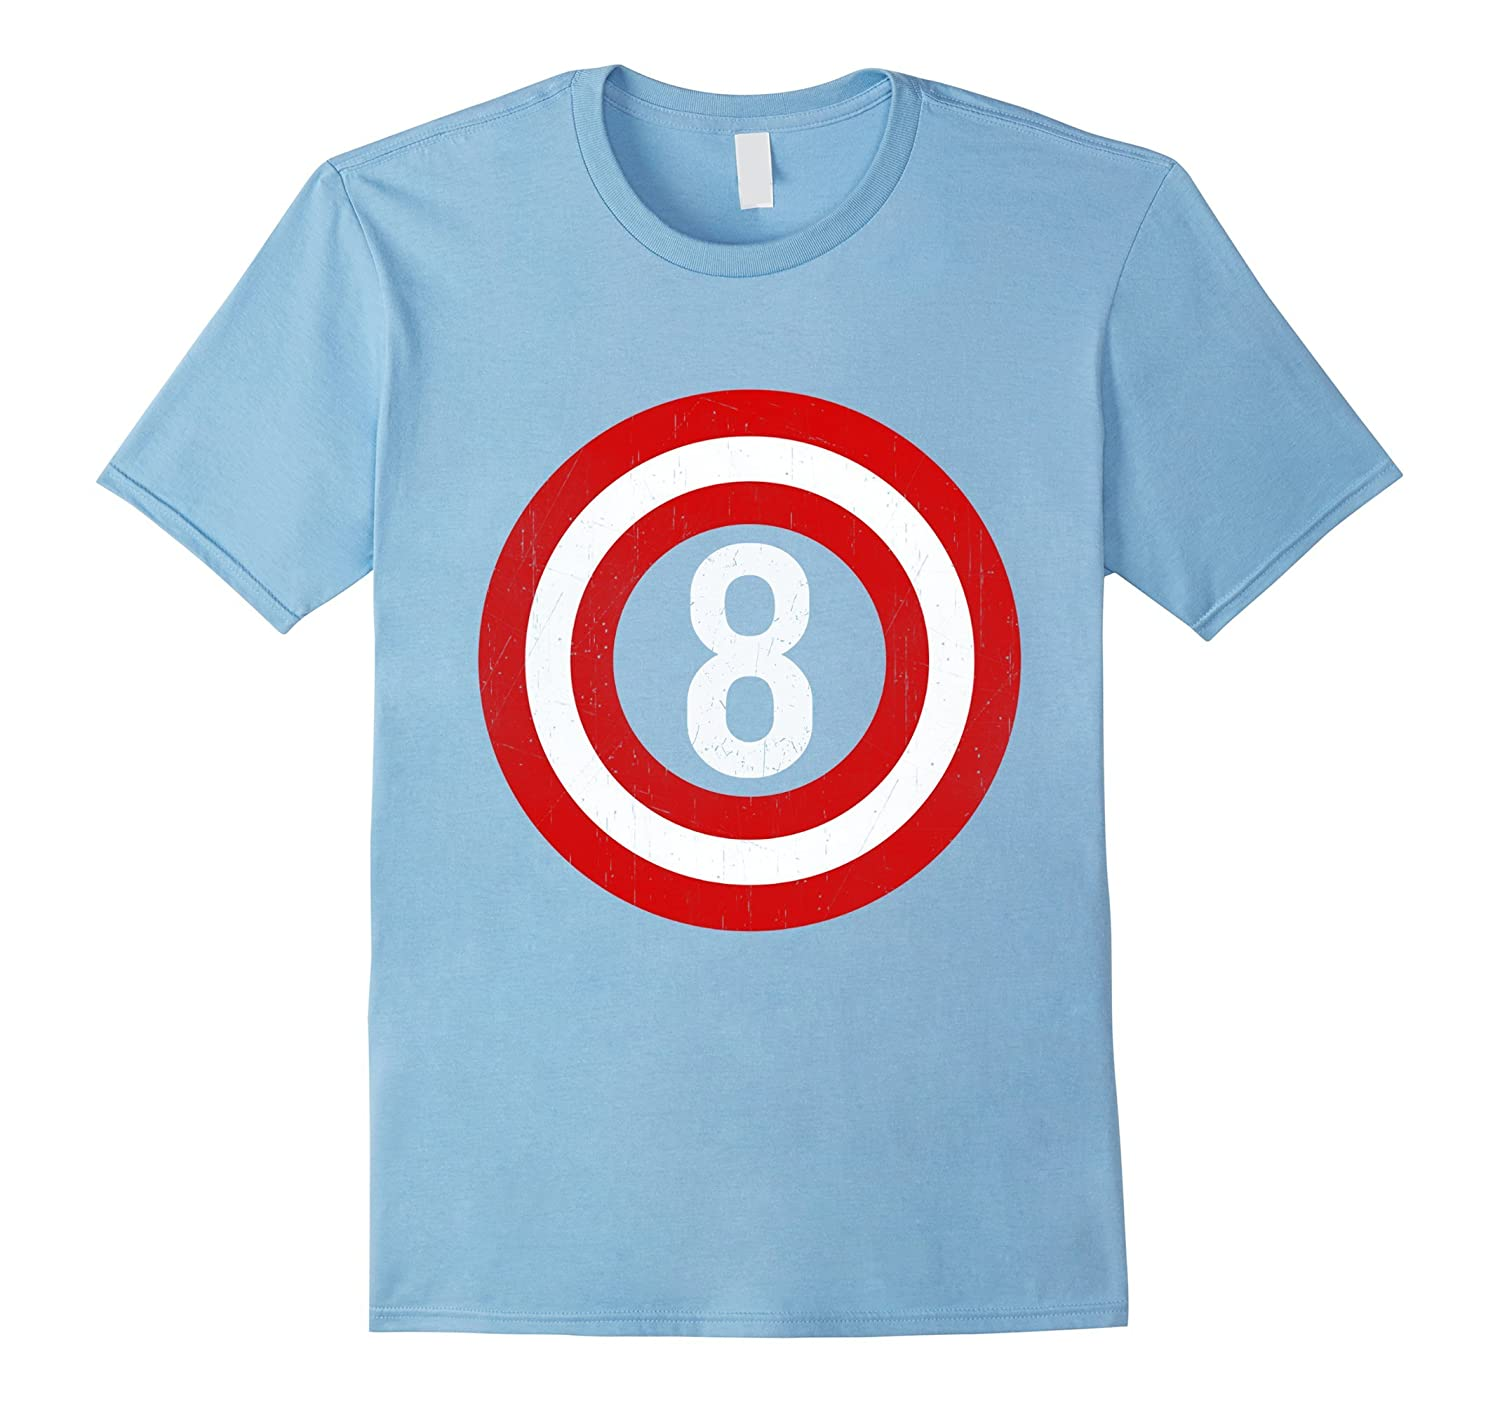 Captain 8th Birthday Tshirt Gift 8 Years Old Kids Boy Girl BN